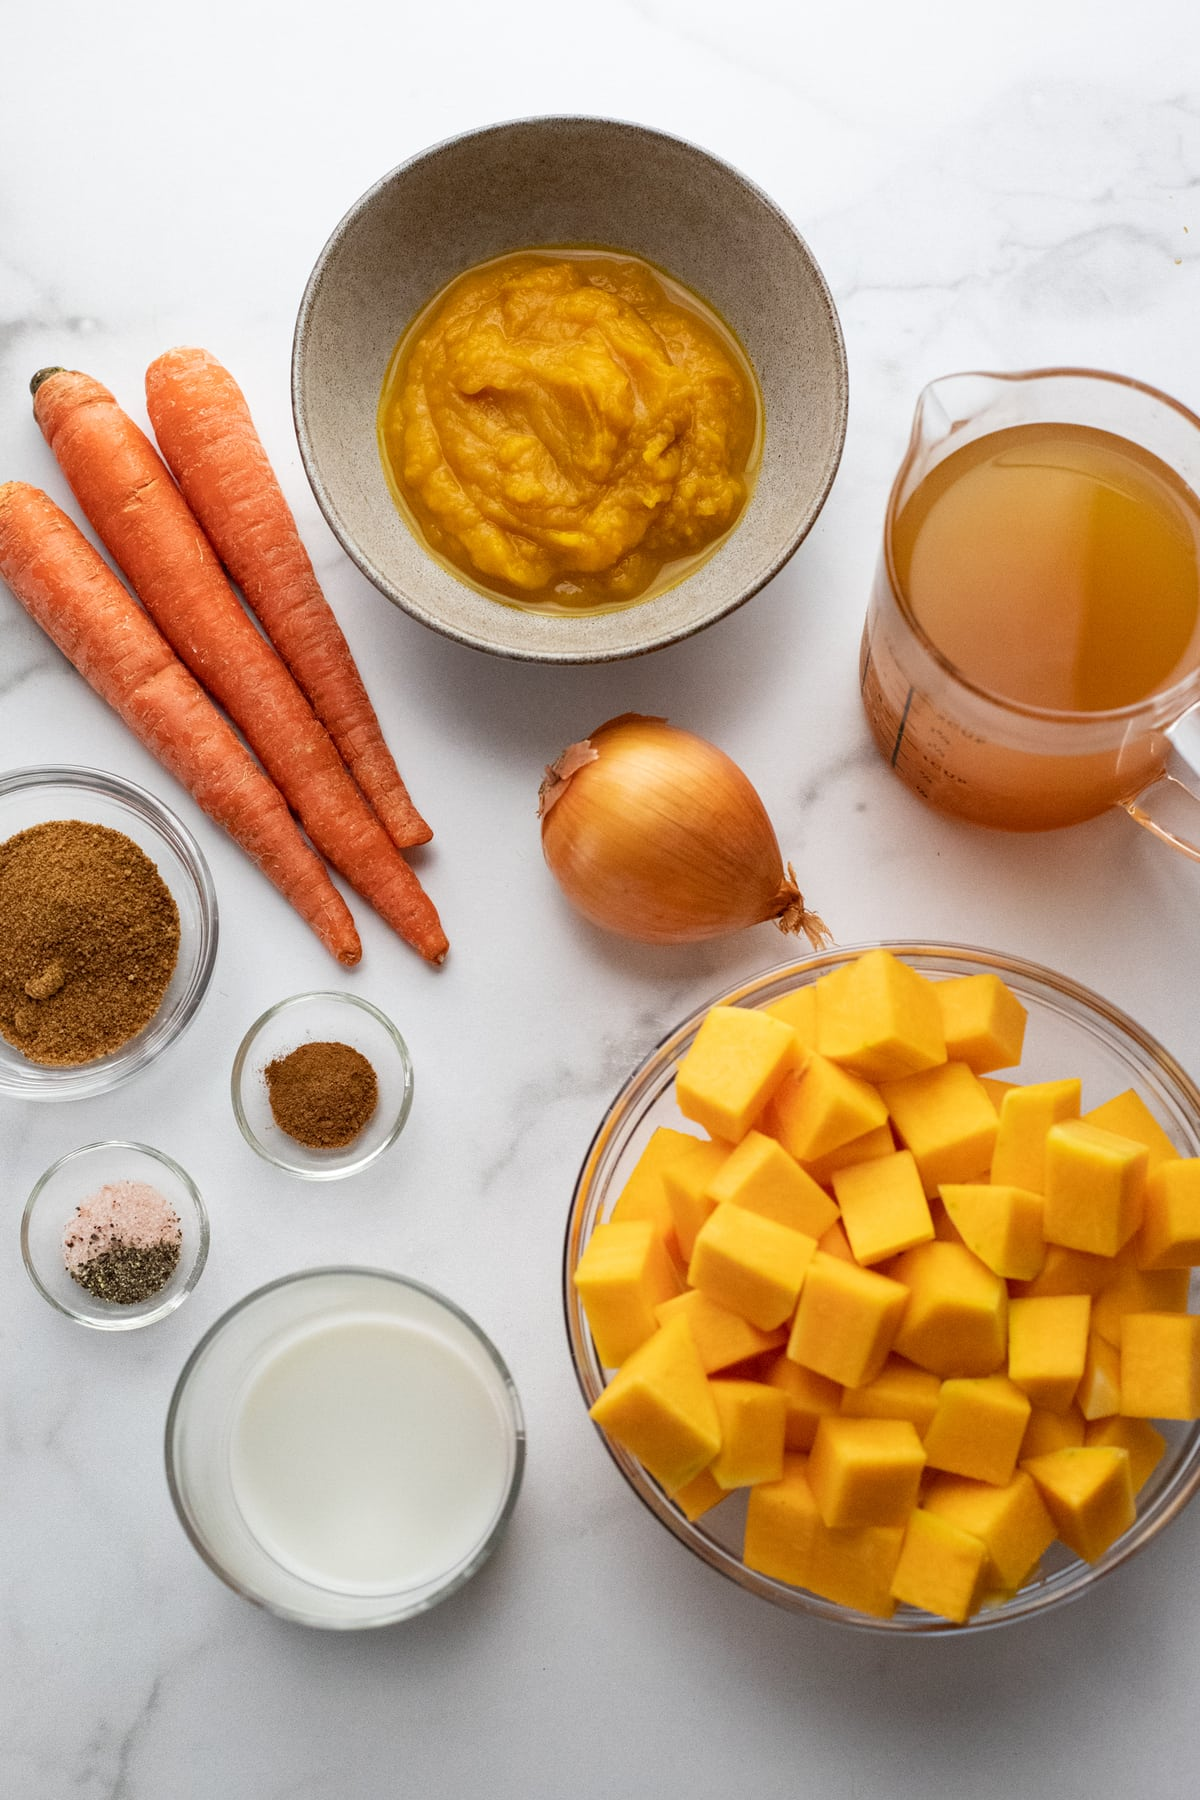 Ingredients for butternut squash soup arranged on white counter.